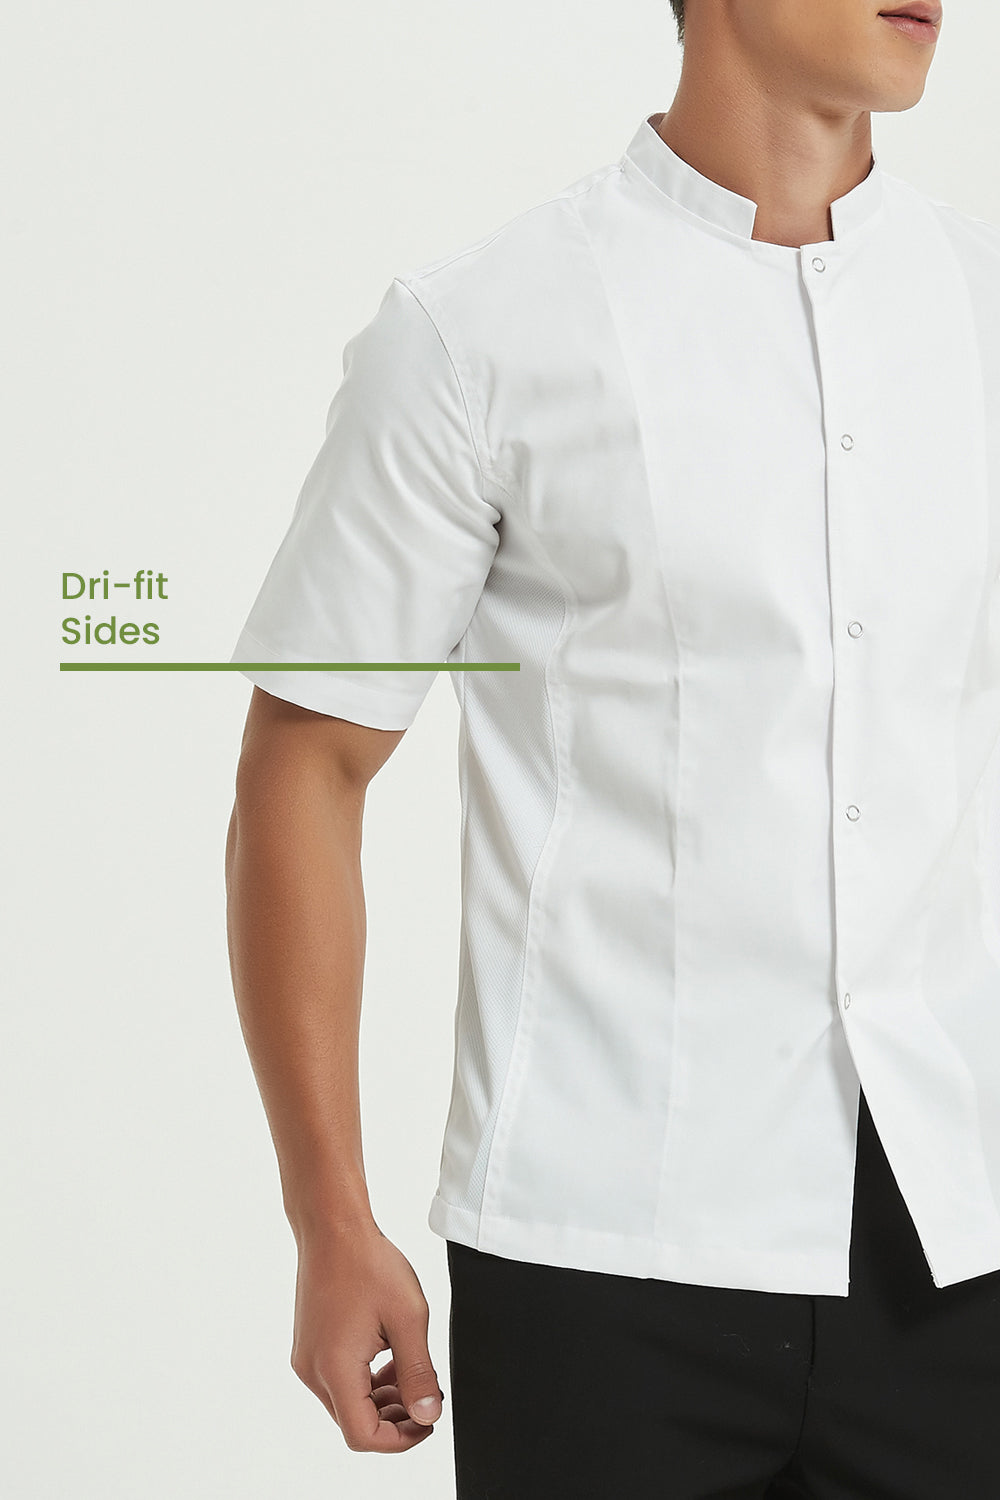 Mint White Chef Jacket with Dri-fit, Side View